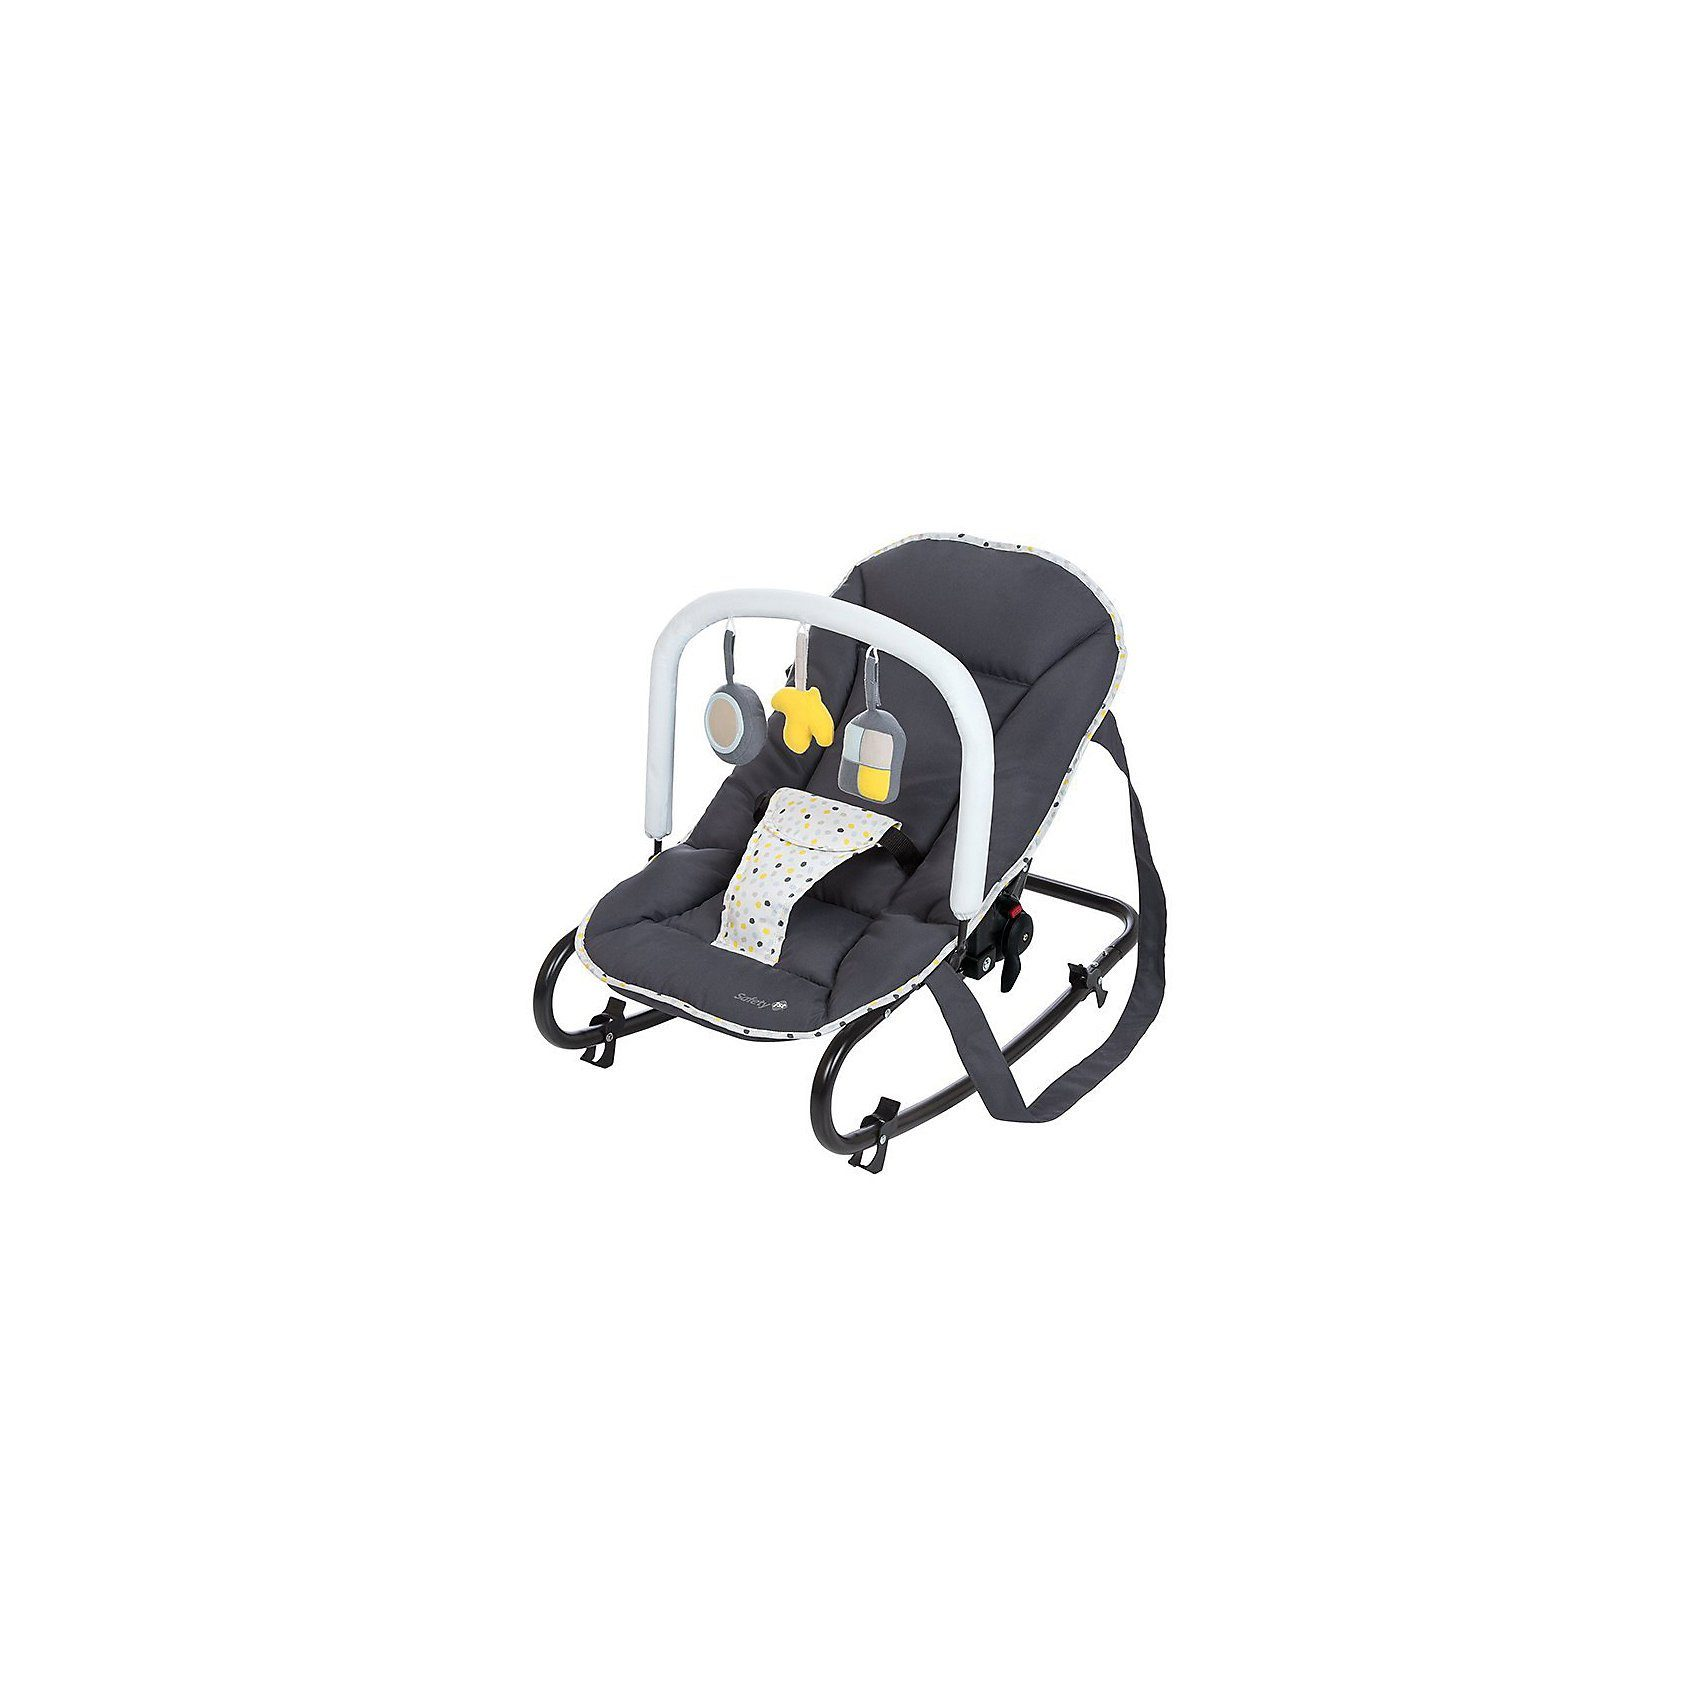 Safety 1st Wippe Koala, Grey Patches